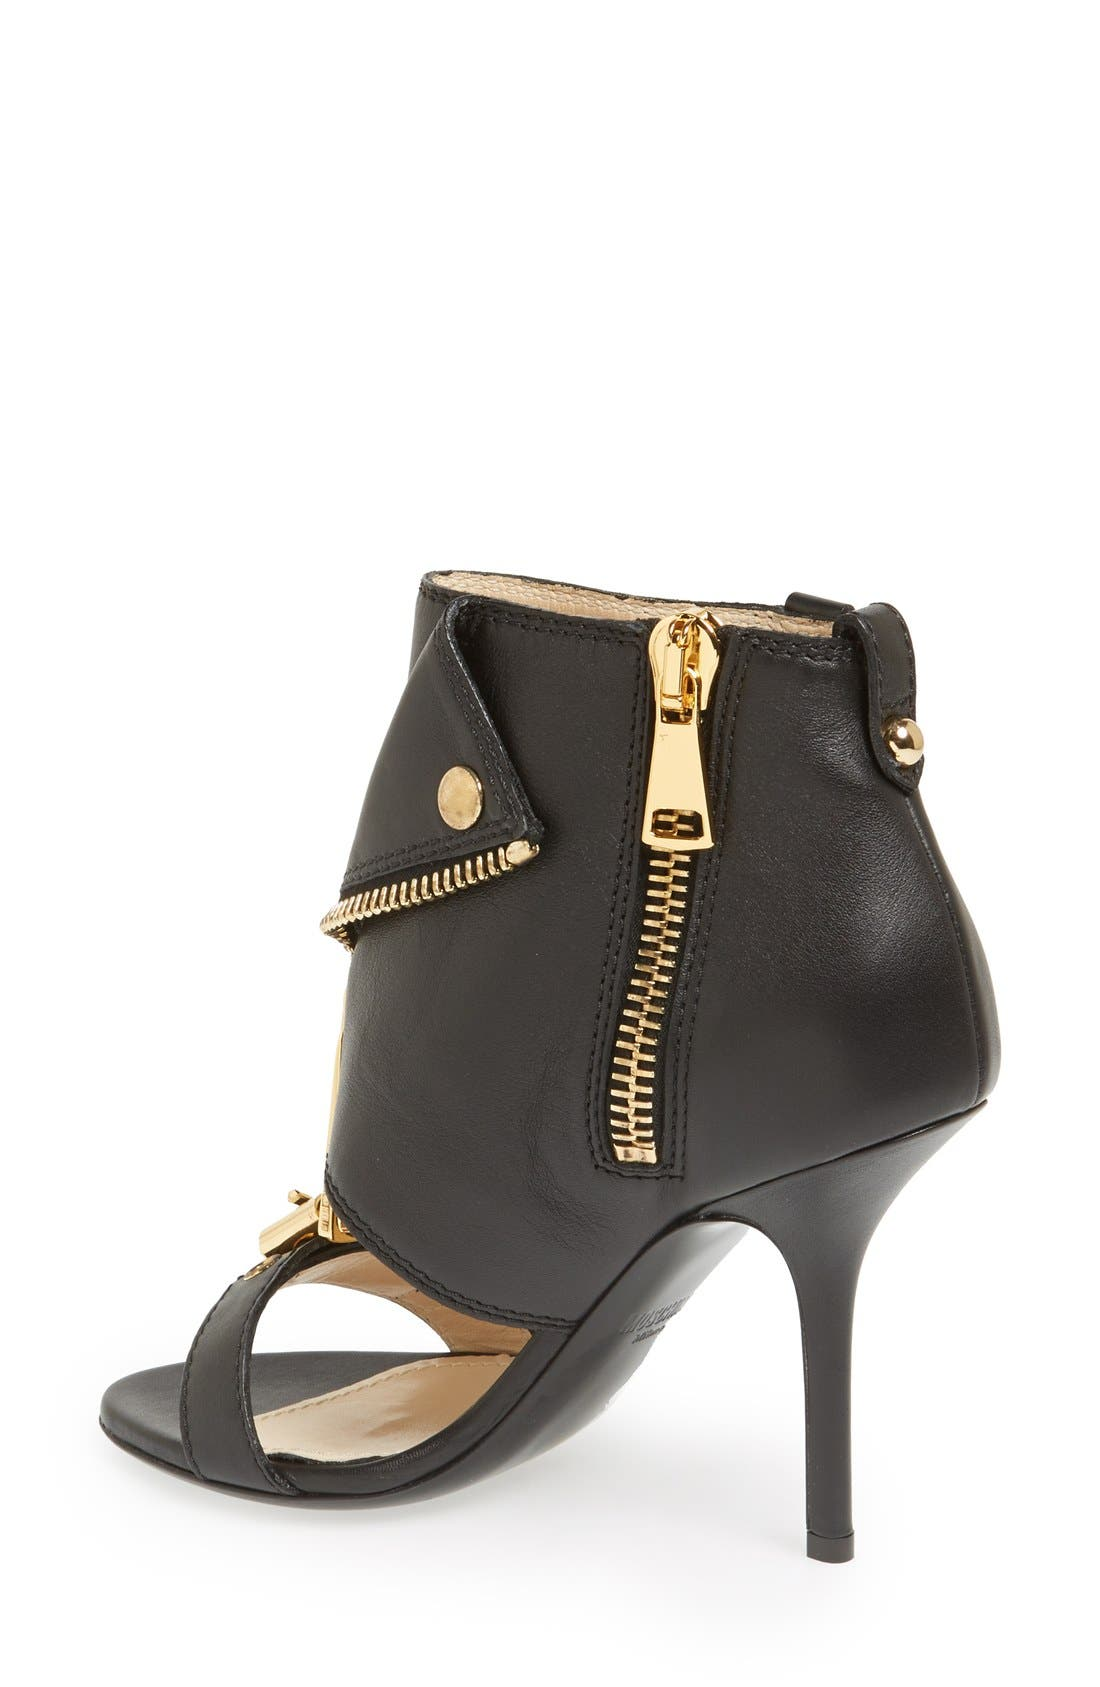 Alternate Image 2  - Moschino 'Moto Jacket' Italian Calfskin Sandal (Women)